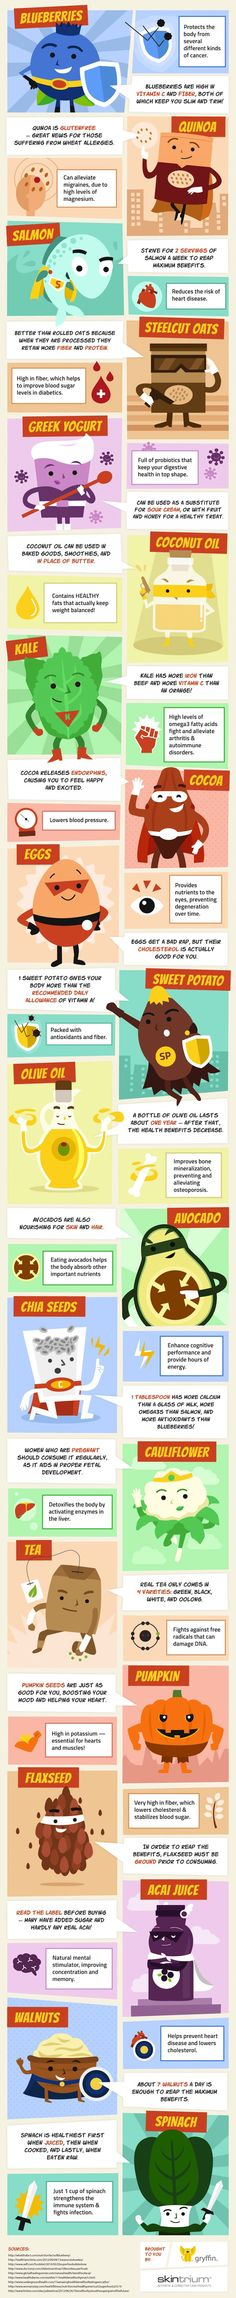 Are you getting enough #SUPERFOODS?  Here's a breakdown of what they are and their health benefits.  Chow down on healthy food choices to improve your health and life  #spinach #quinoa infographic